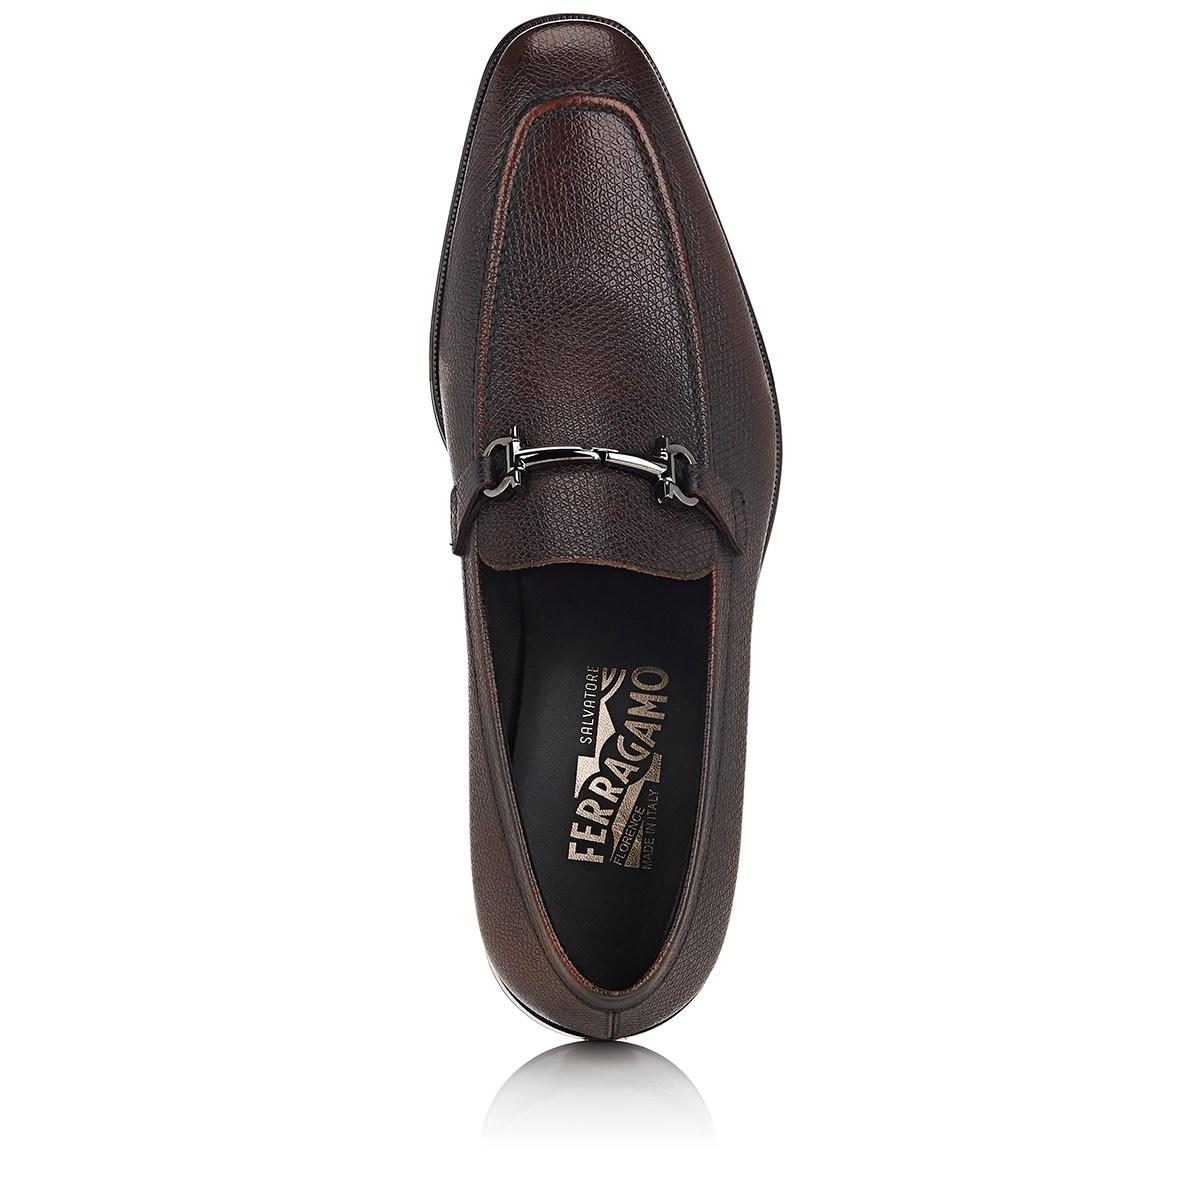 36087318343 Lyst - Ferragamo Fenice Burnished Leather Loafers in Brown for Men